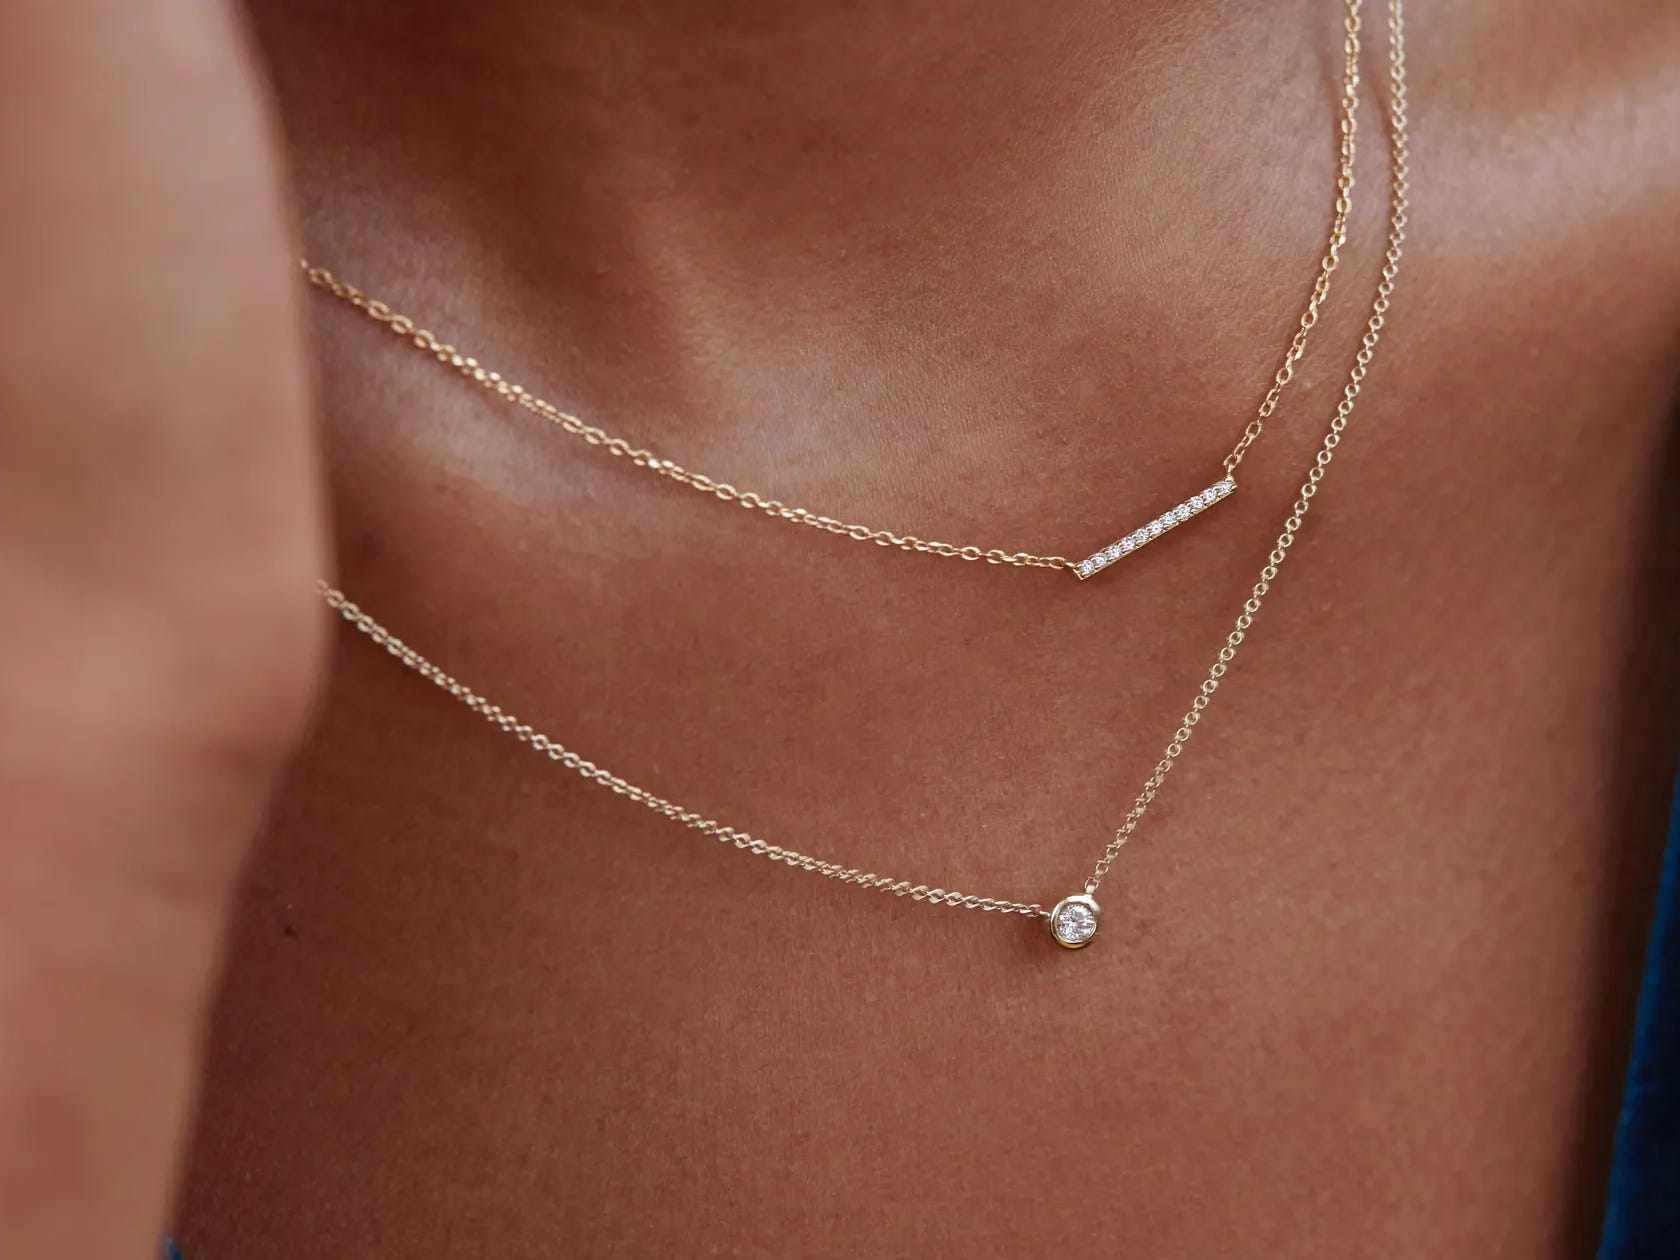 popular jewelry mejuri affordable everyday